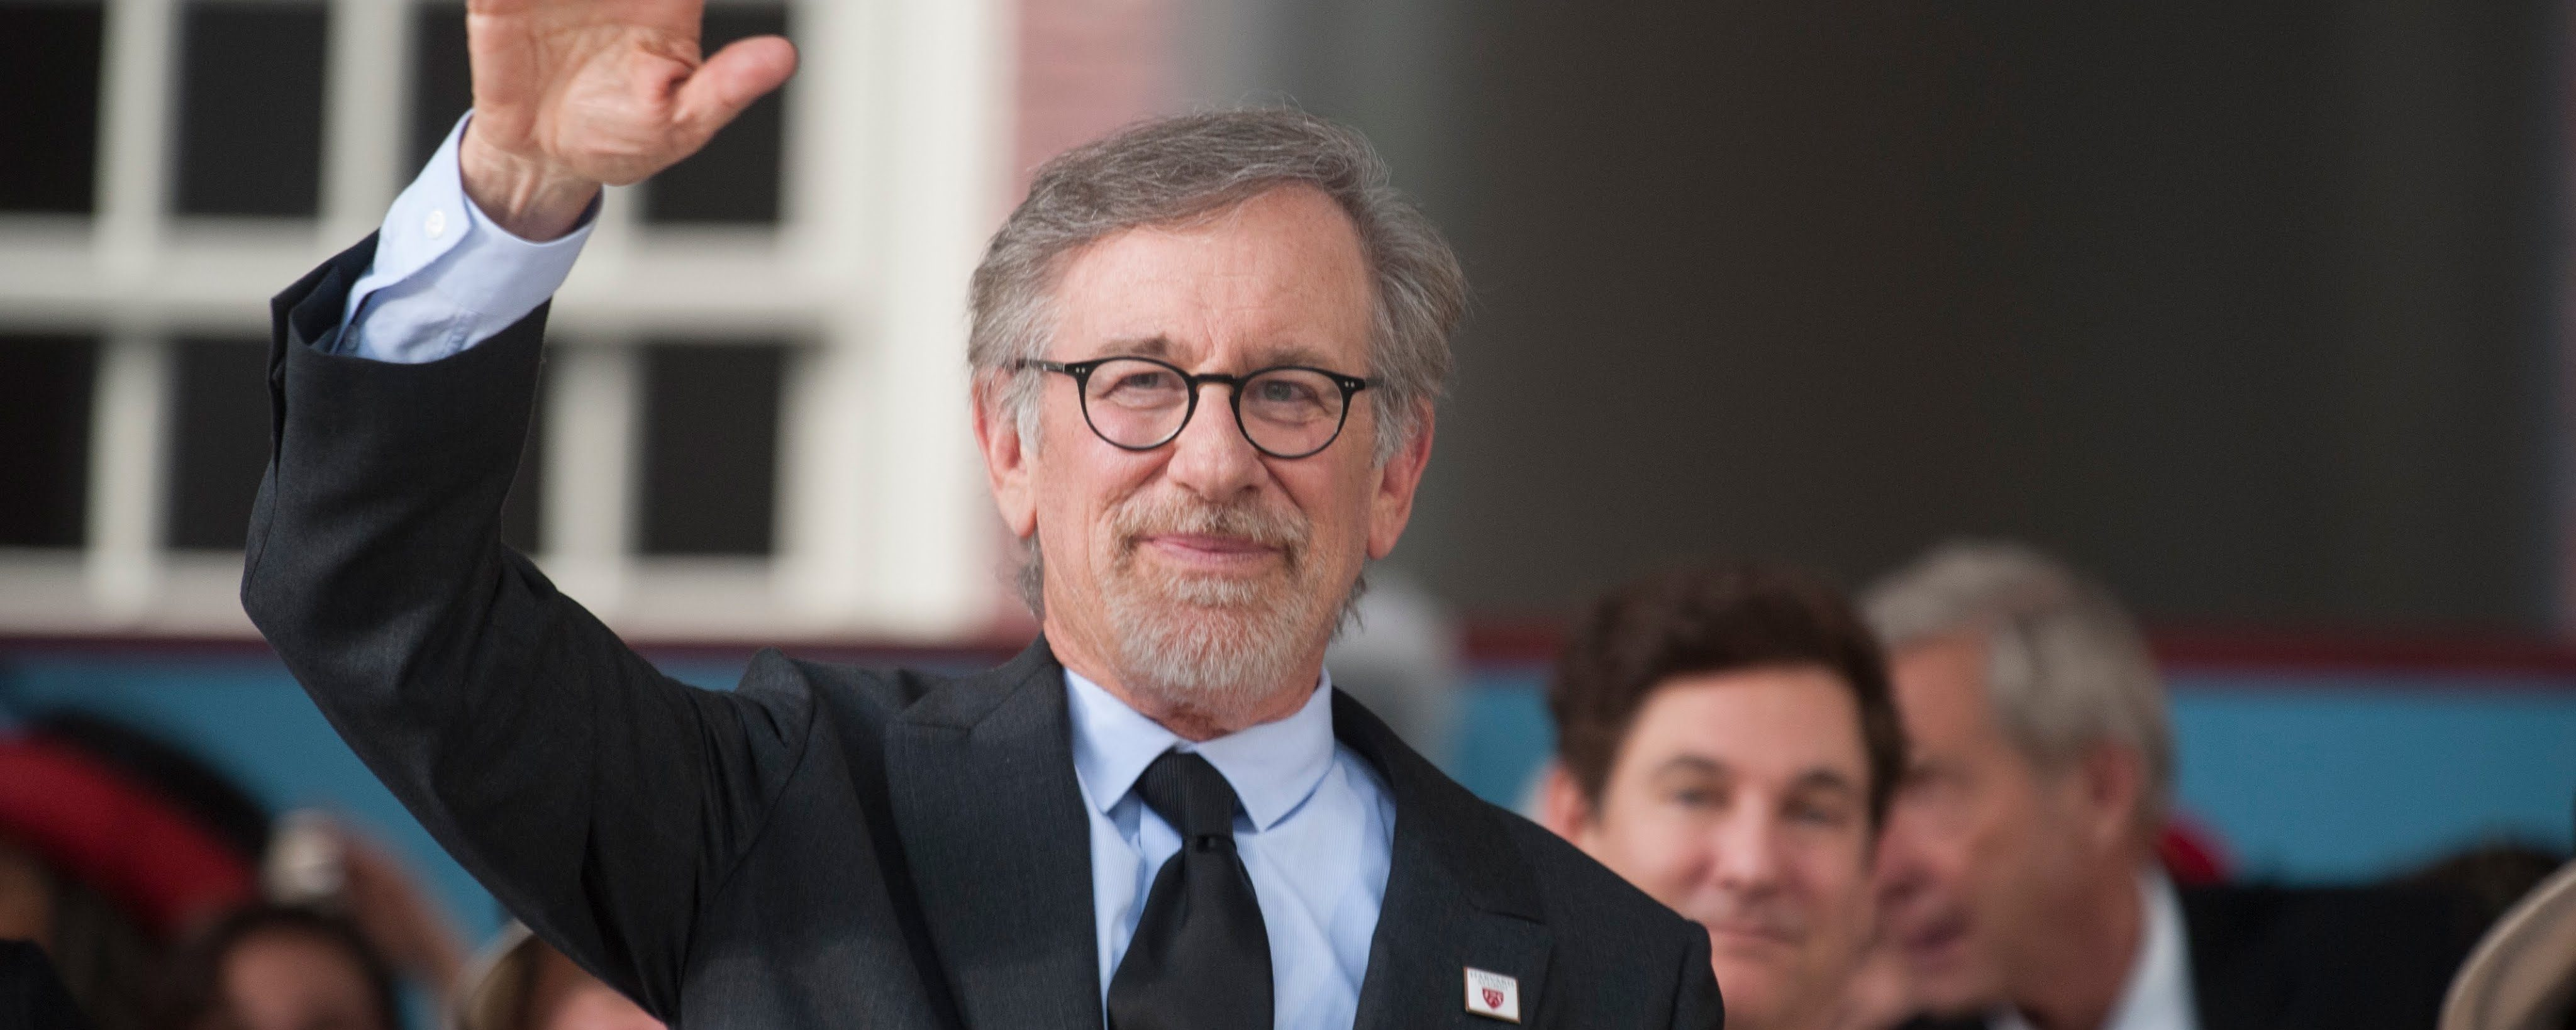 What Steven Spielberg Can Teach Us: Listen to the Whispers of Your Intuition